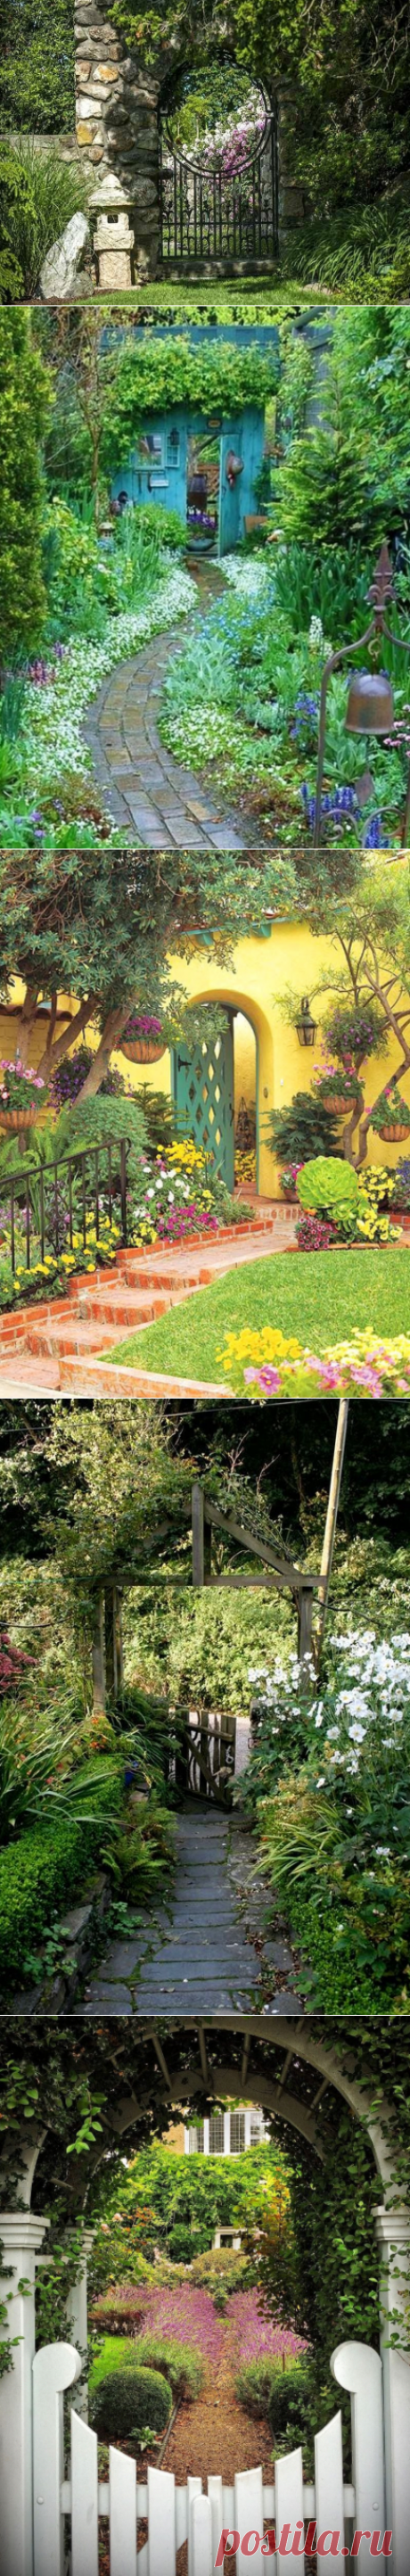 35 Beautiful Flower Garden Gate Ideas, Designs and Pictures - Home and Gardens